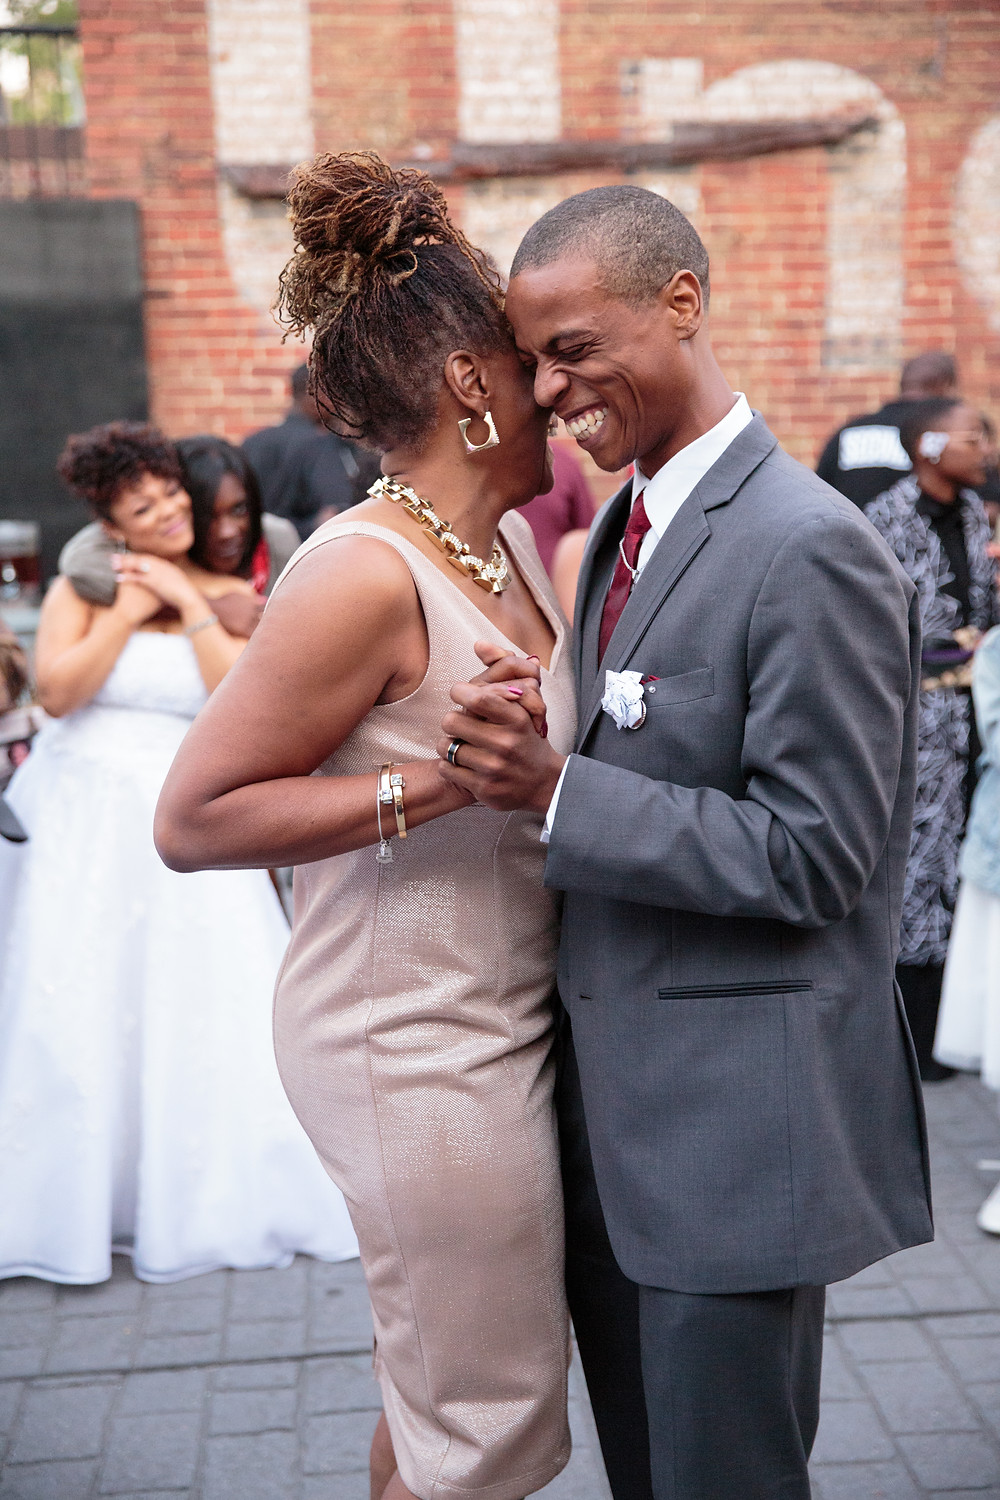 The mother of the groom shares a dance with her son during the wedding reception at the Gallery O on H in Washington DC.